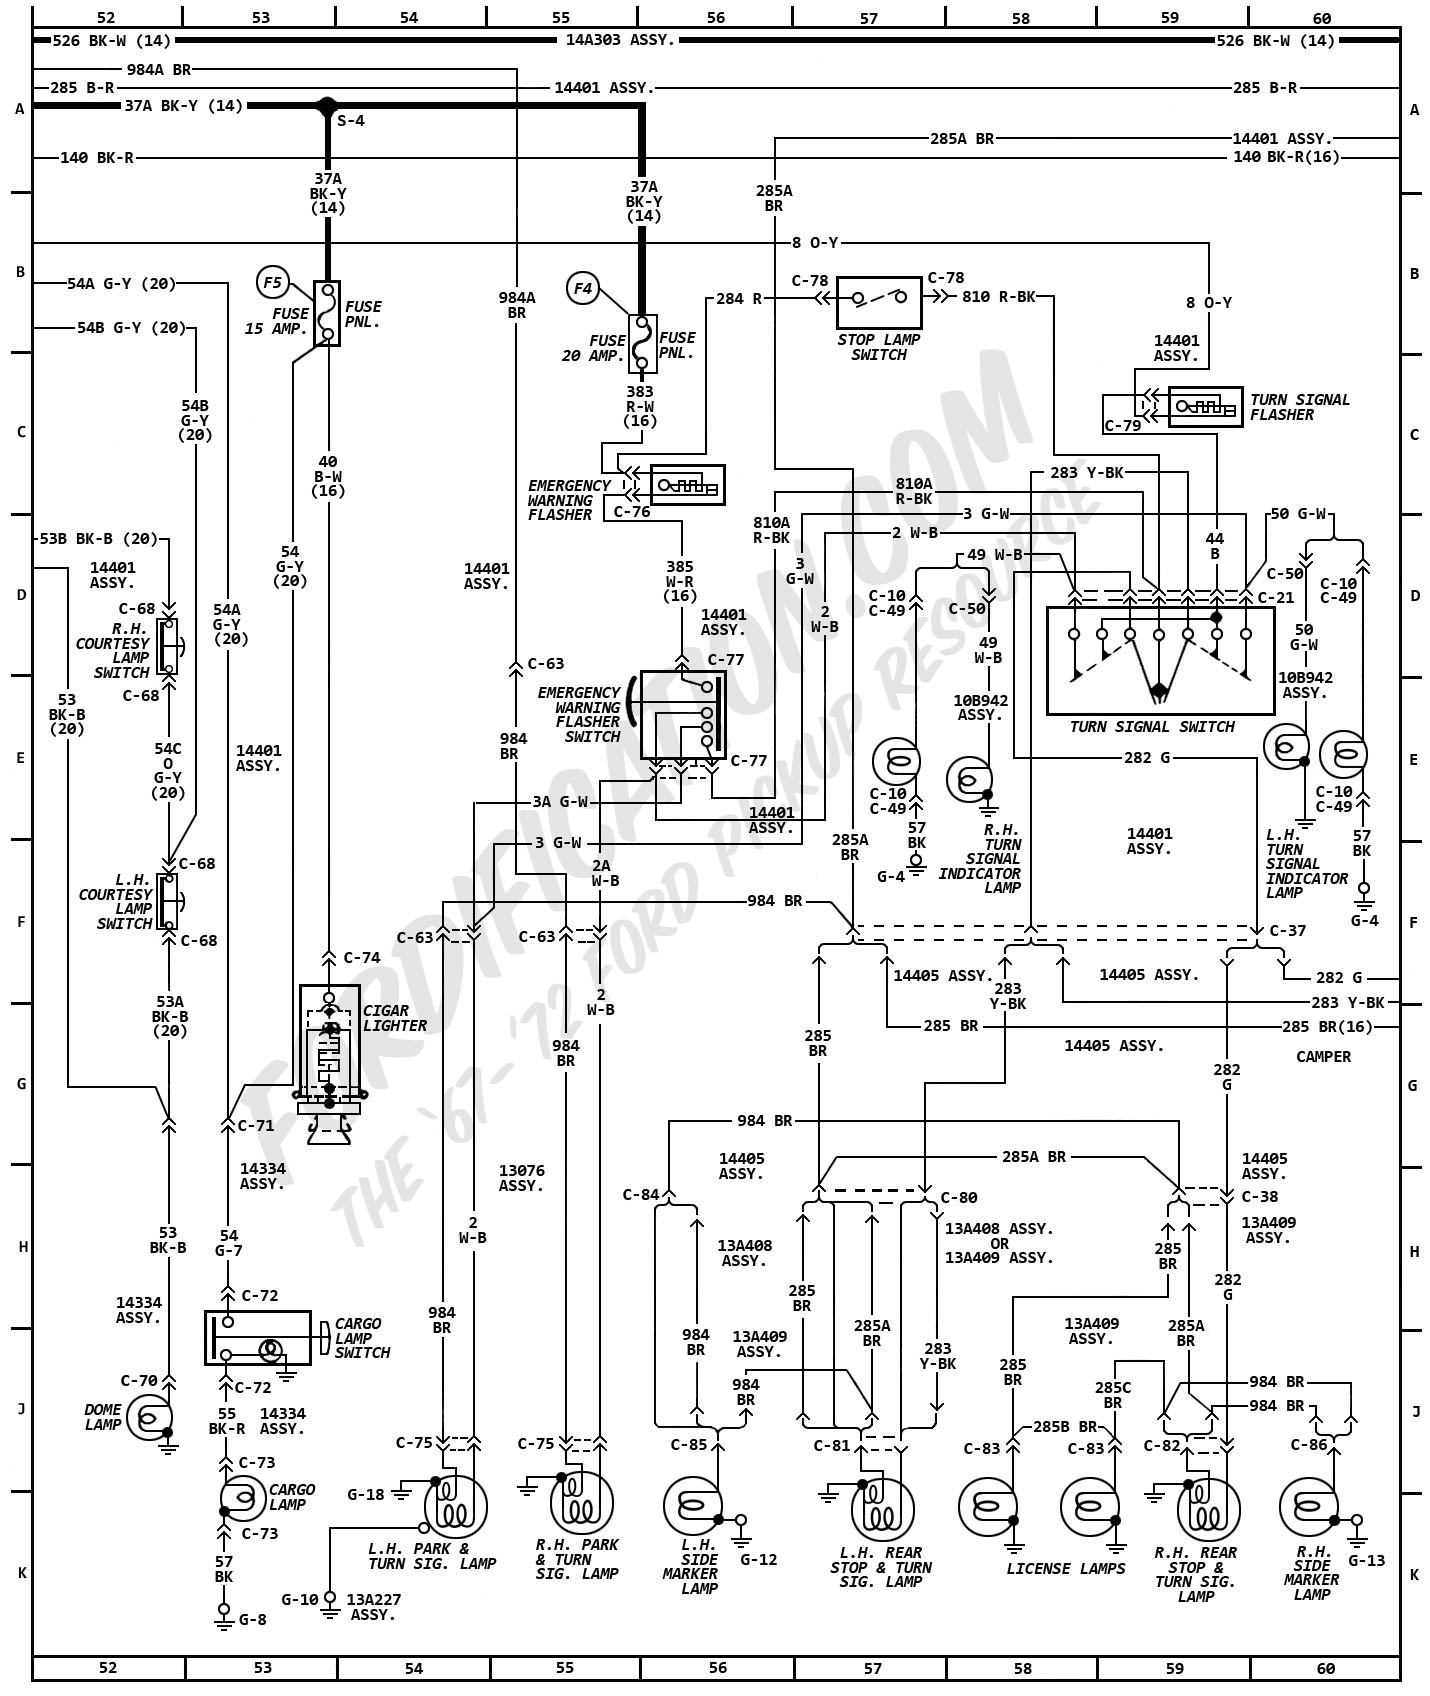 1972MasterWiring_06 1972 ford truck wiring diagrams fordification com  at gsmx.co